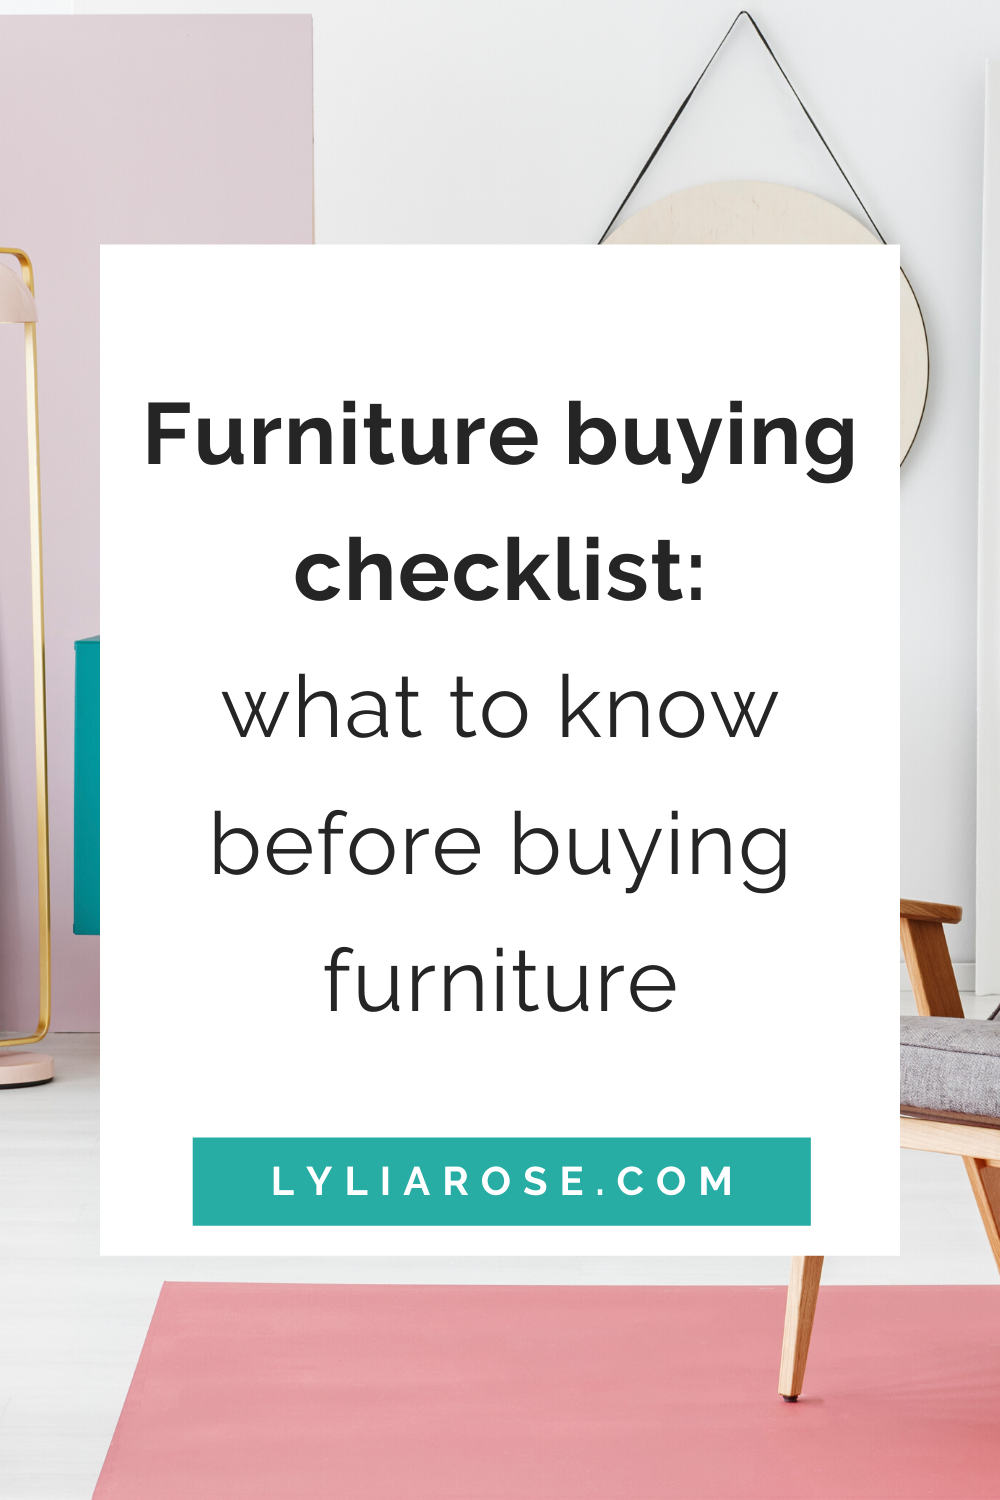 Furniture buying checklist_ what to know before buying furniture (1)